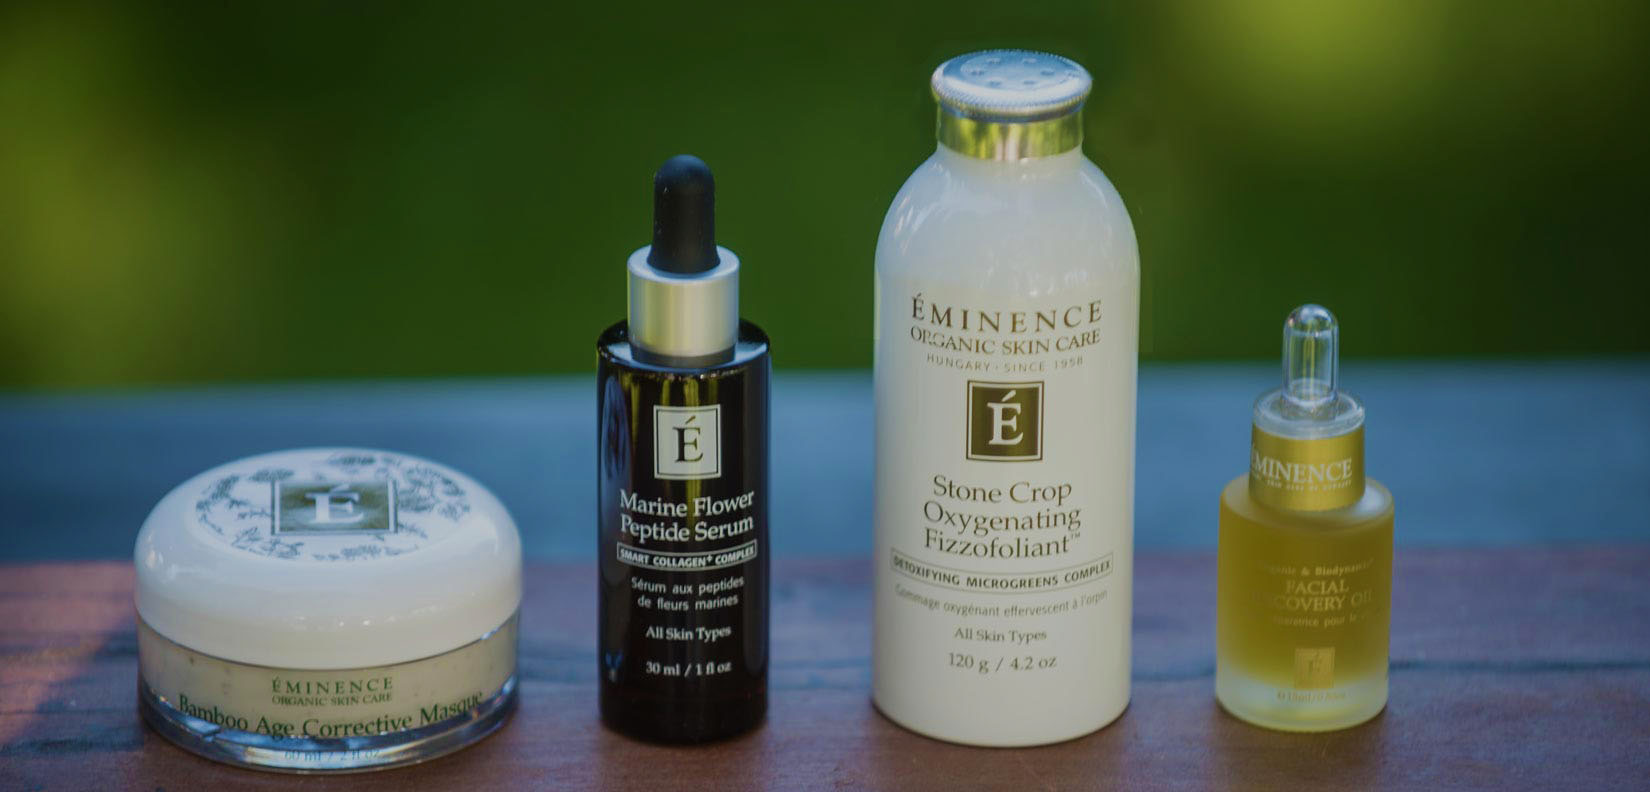 Éminence spa products